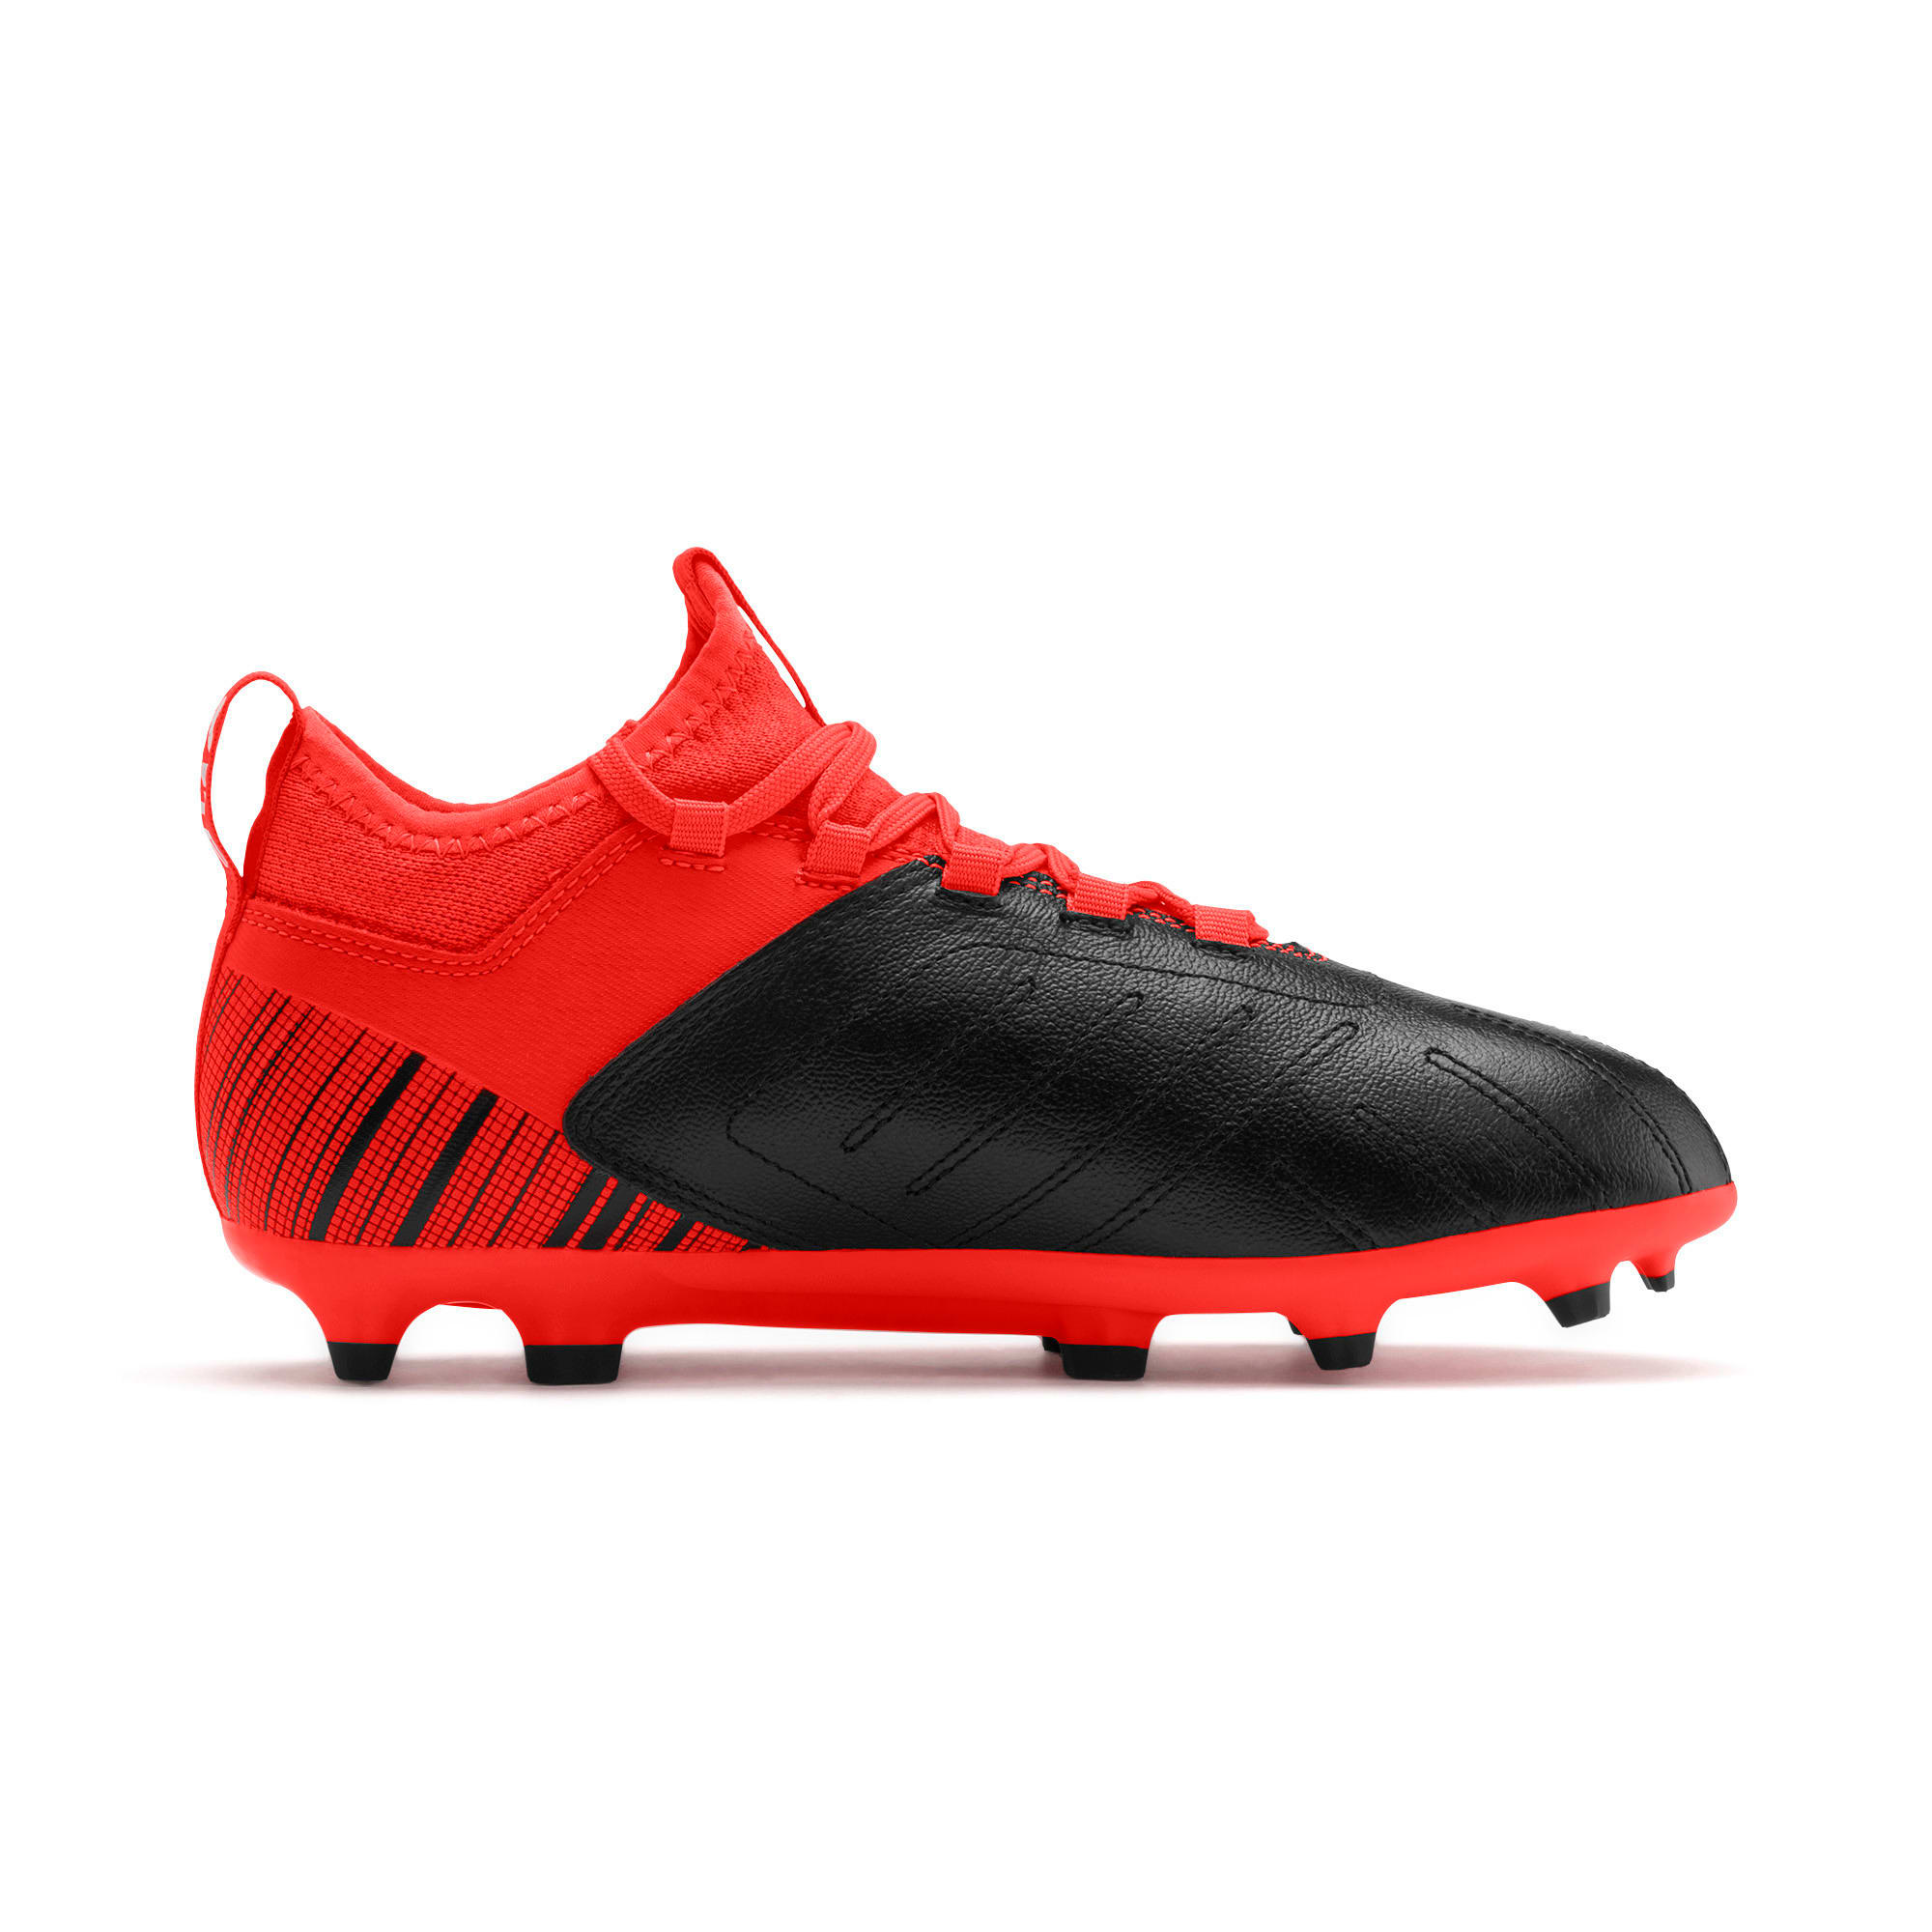 Thumbnail 5 of PUMA ONE 5.3 FG/AG Soccer Cleats JR, Black-Nrgy Red-Aged Silver, medium